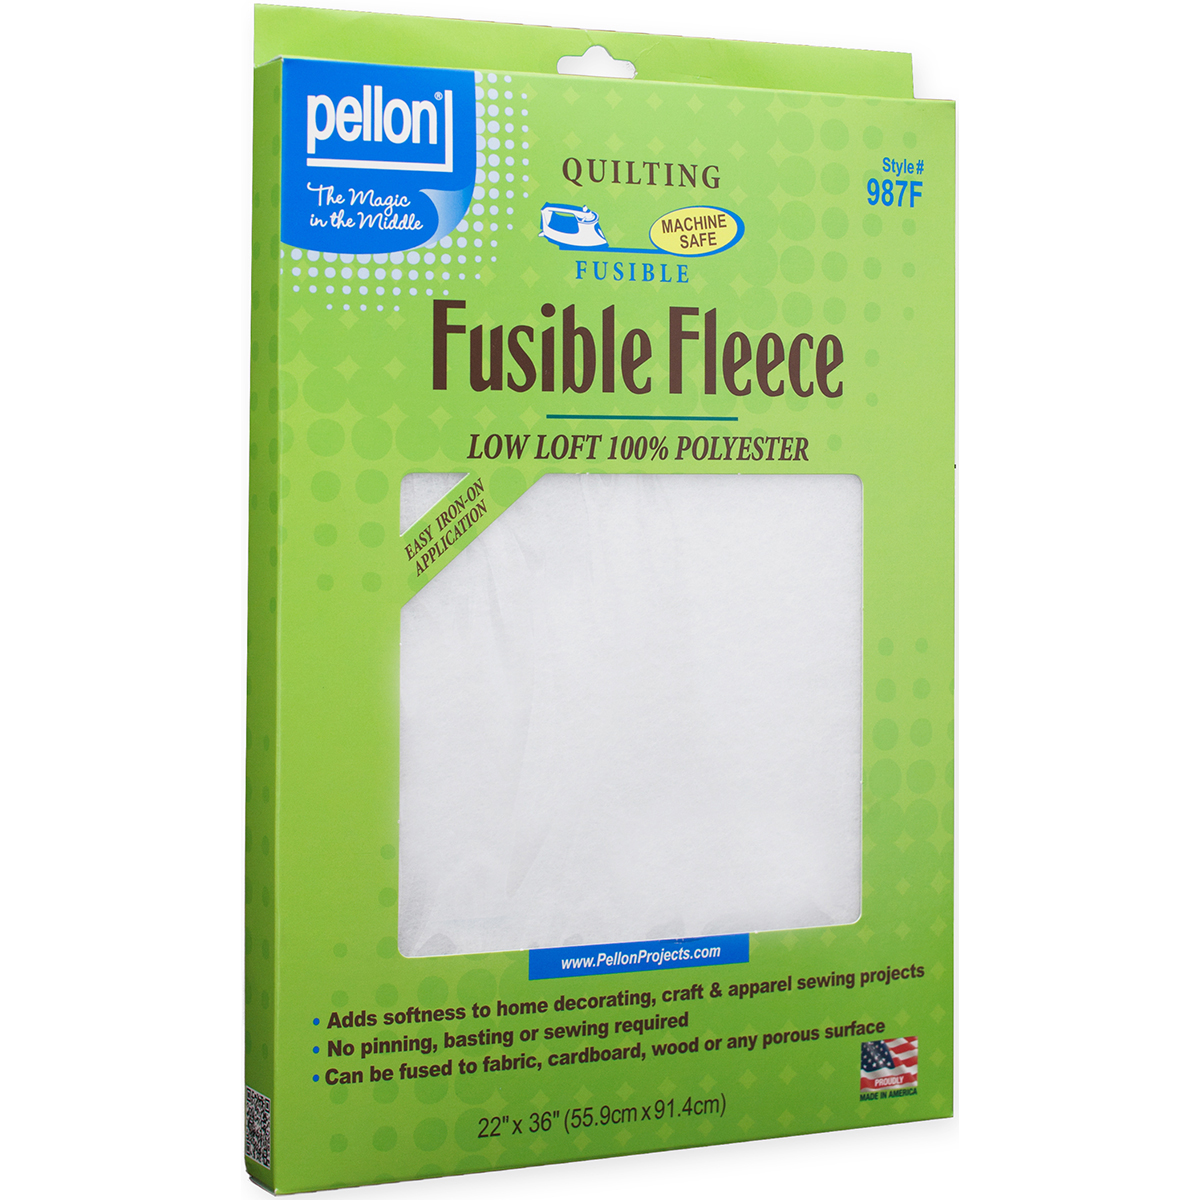 "Fusible Fleece - White 22"" X 36"